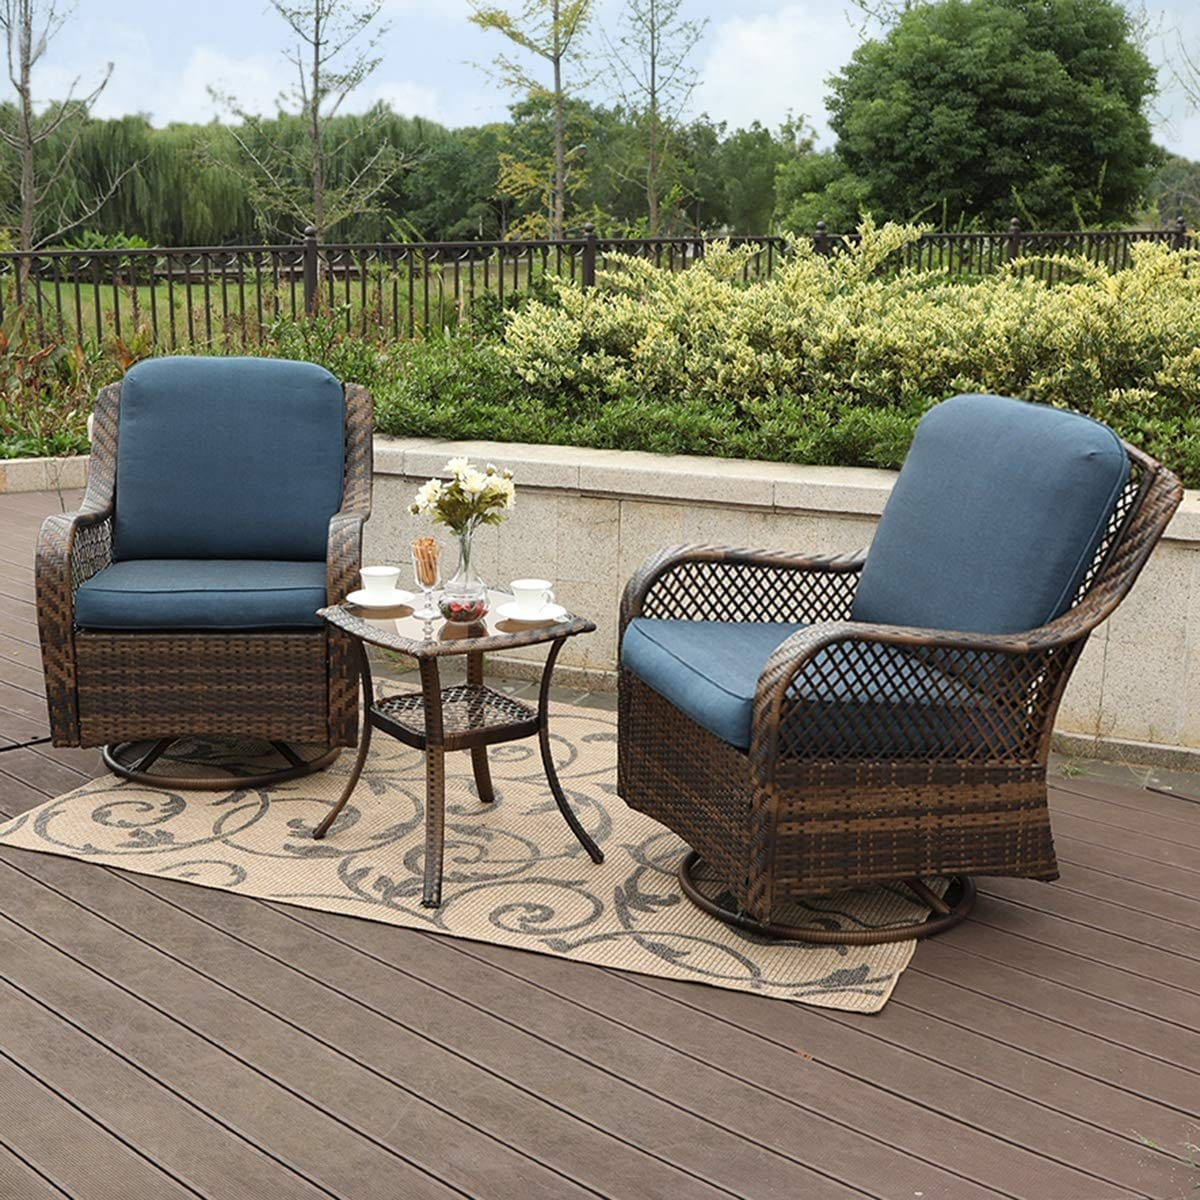 Clarese 3 Piece Rattan Rocking Conversation Set By Havenside Home On Sale Overstock 28894902